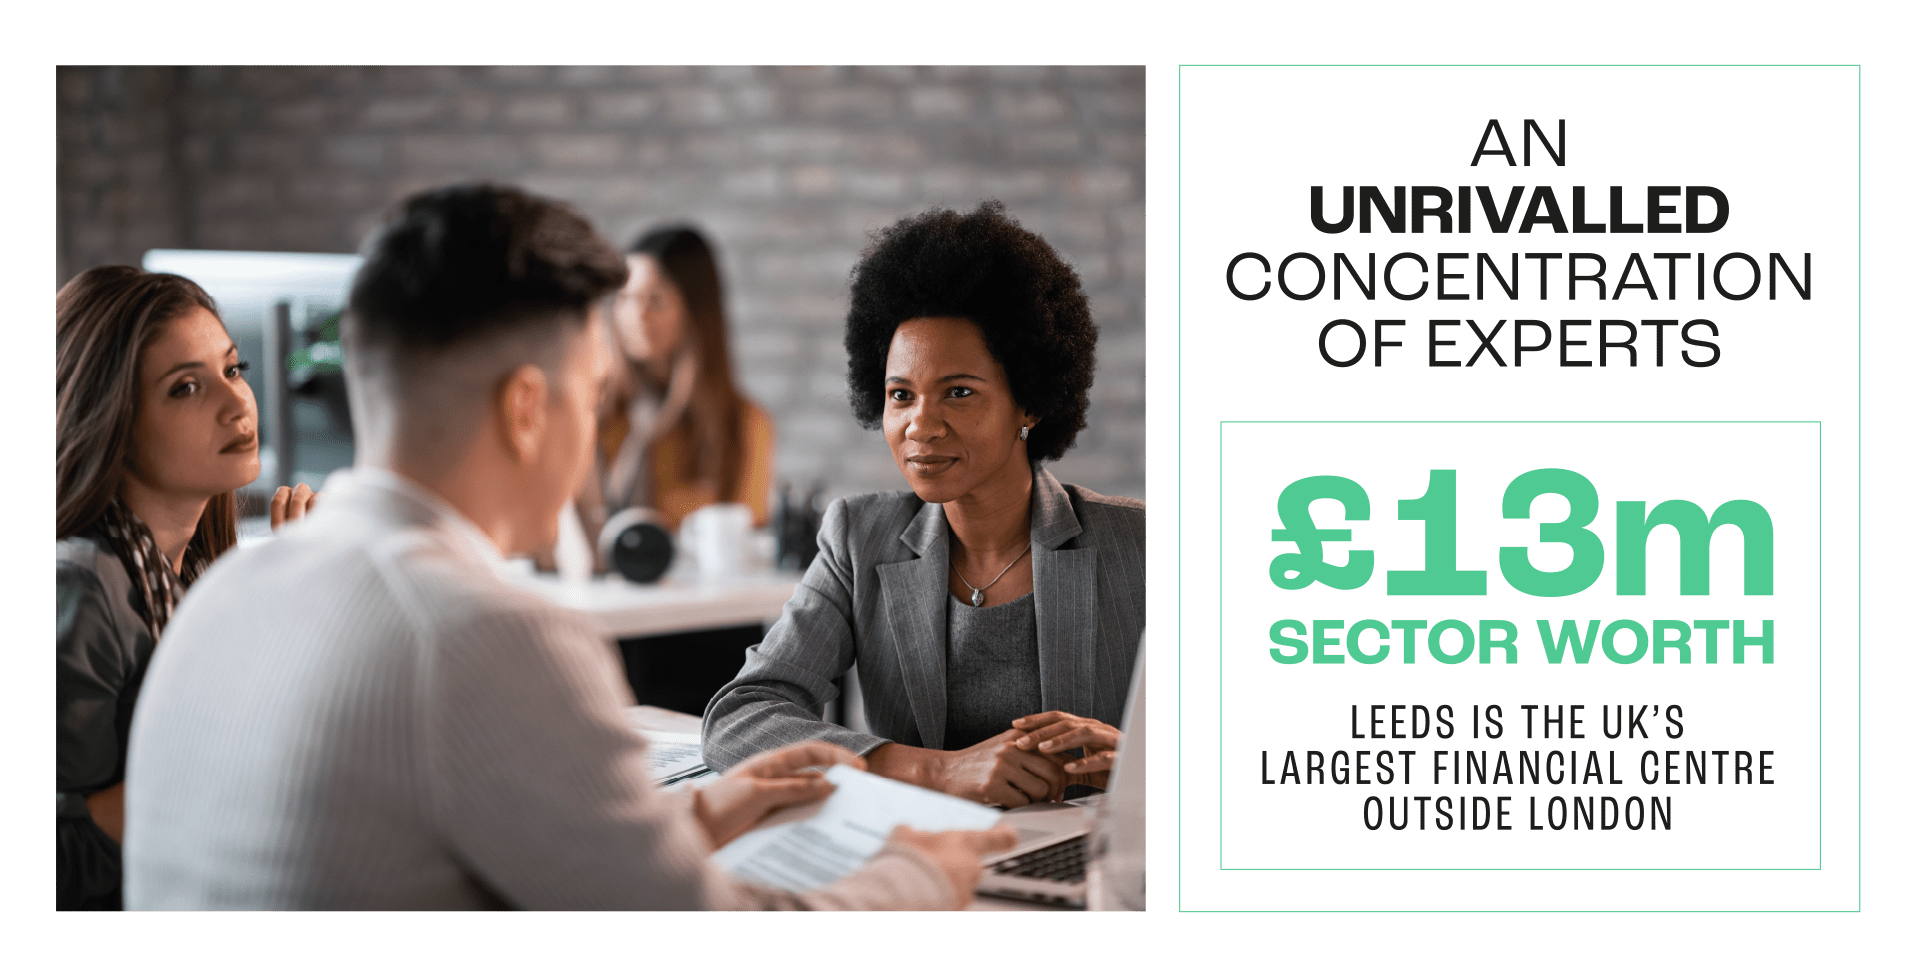 3 people having a meeting looking at a laptop with Leeds finance facts in black and green font.